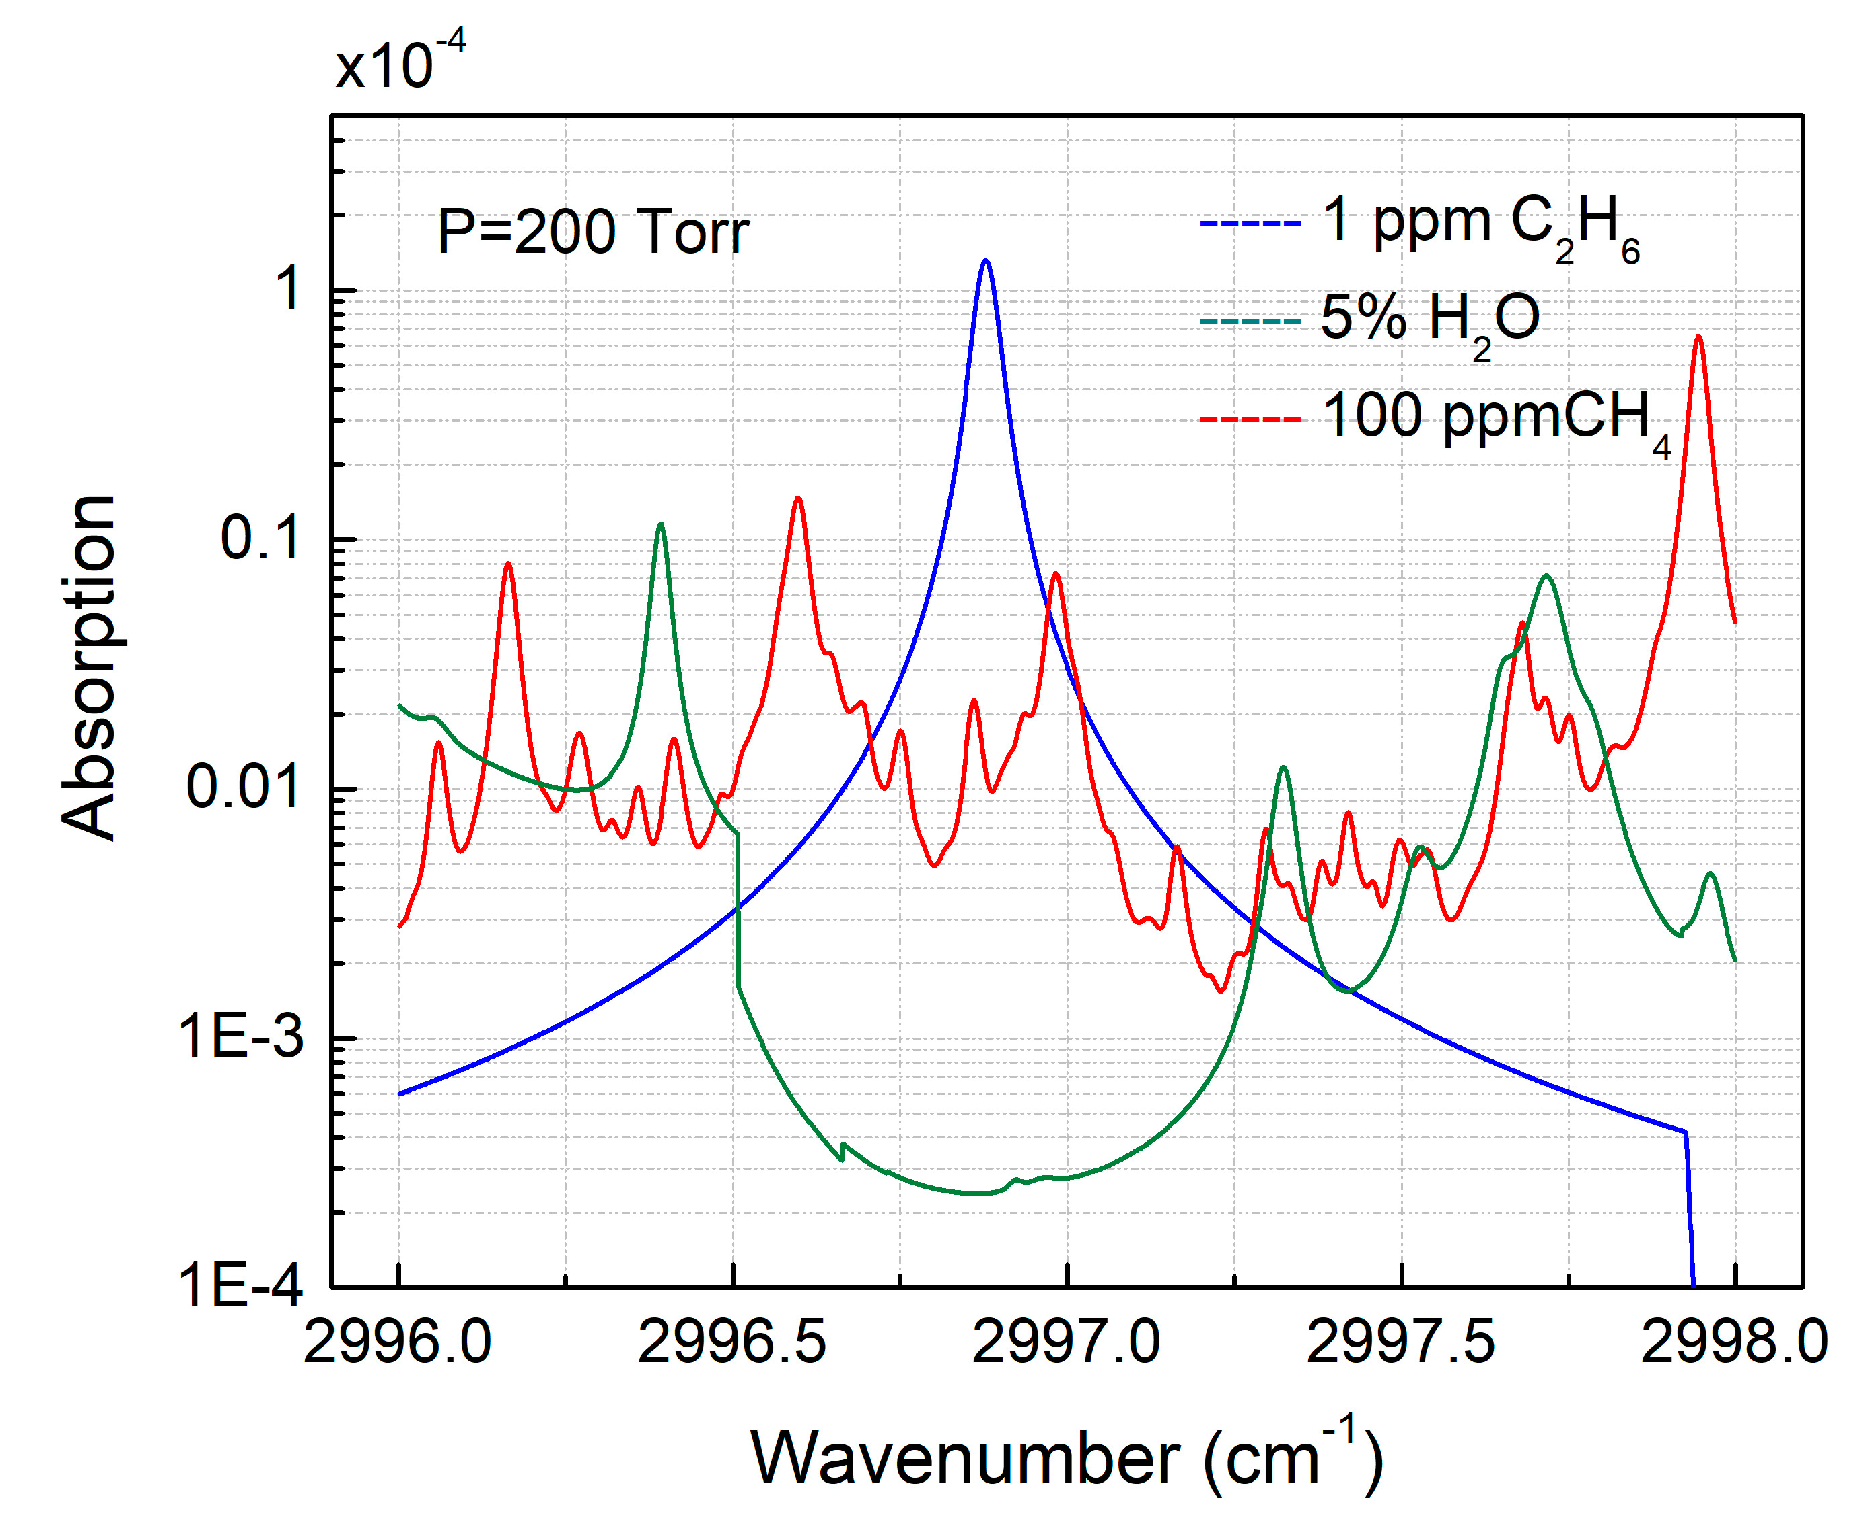 Sensors Free Full Text Ppbv Level Ethane Detection Using Quartz The Lockin Amplifier And Spectroscopy Techniques 18 00723 G001